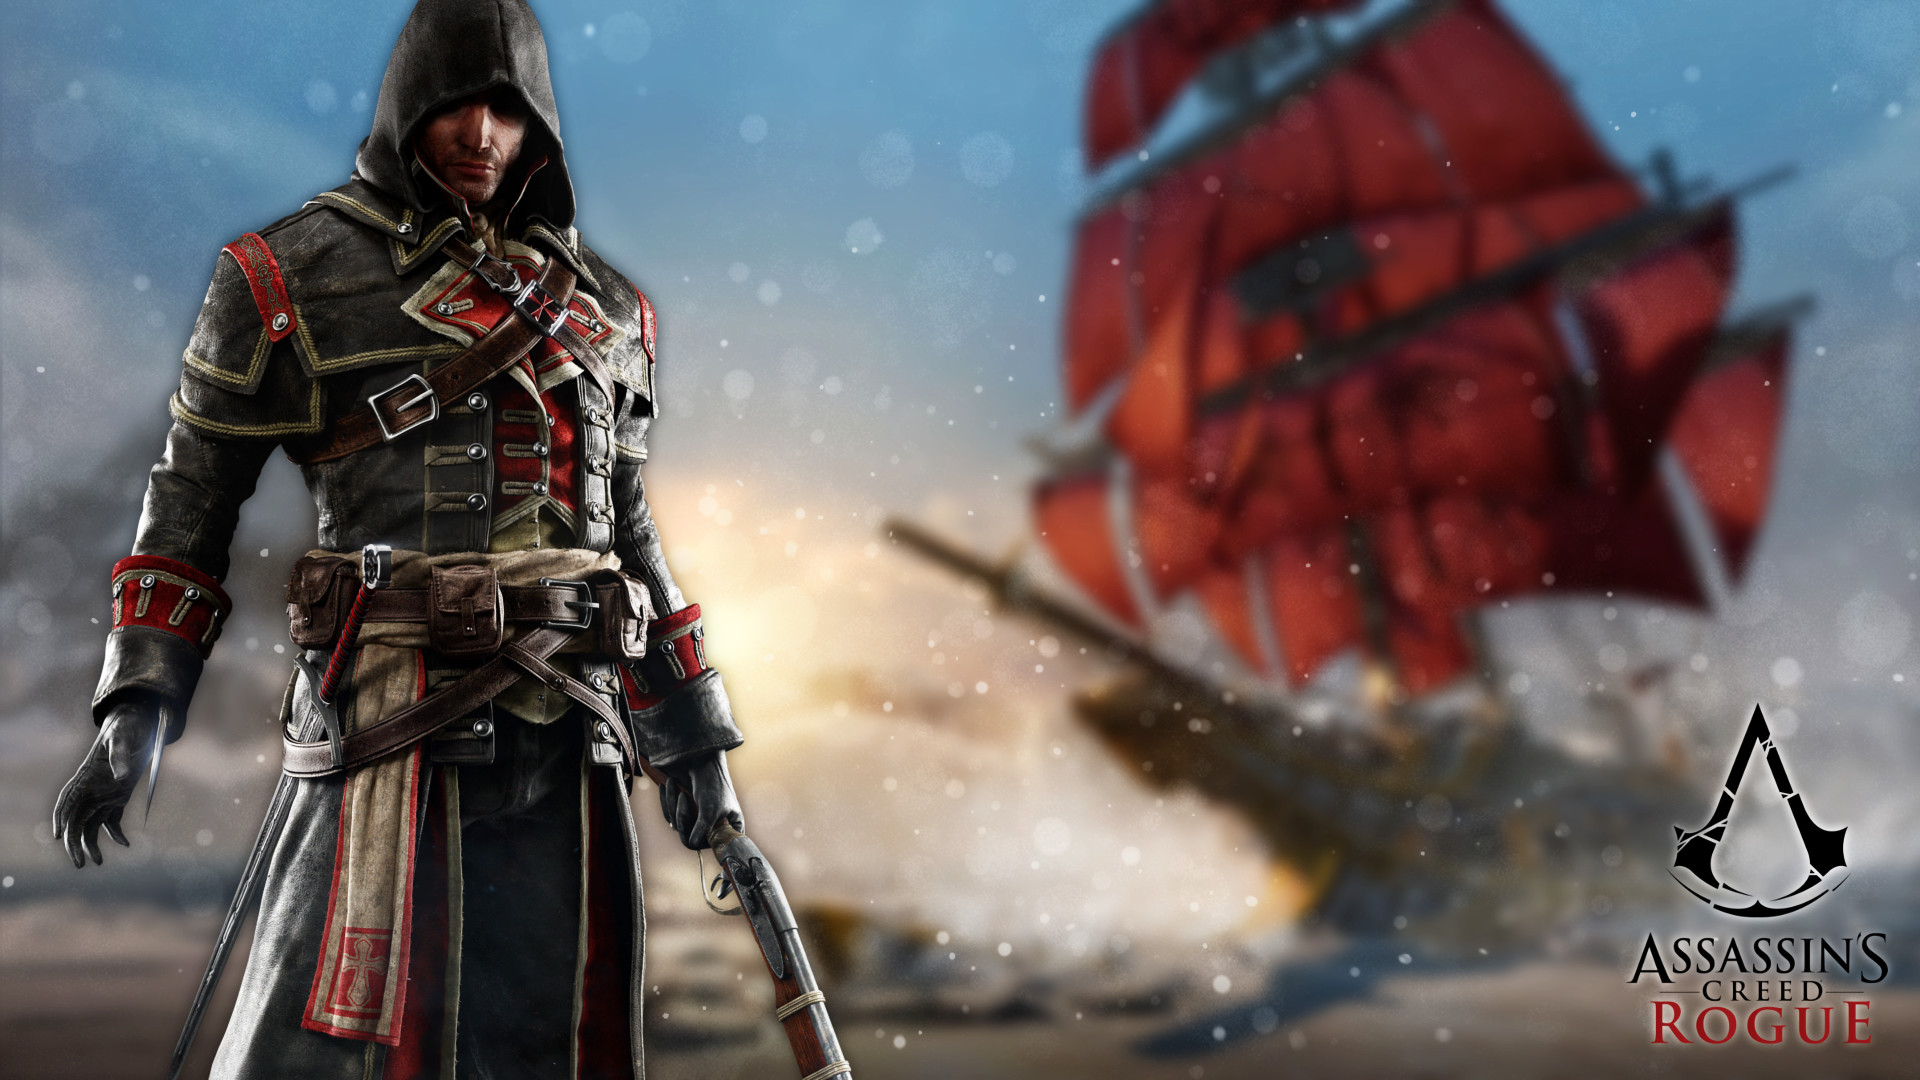 Assassin's Creed Rogue Wallpaper by ZeroMask Assassin's Creed Rogue  Wallpaper by ZeroMask